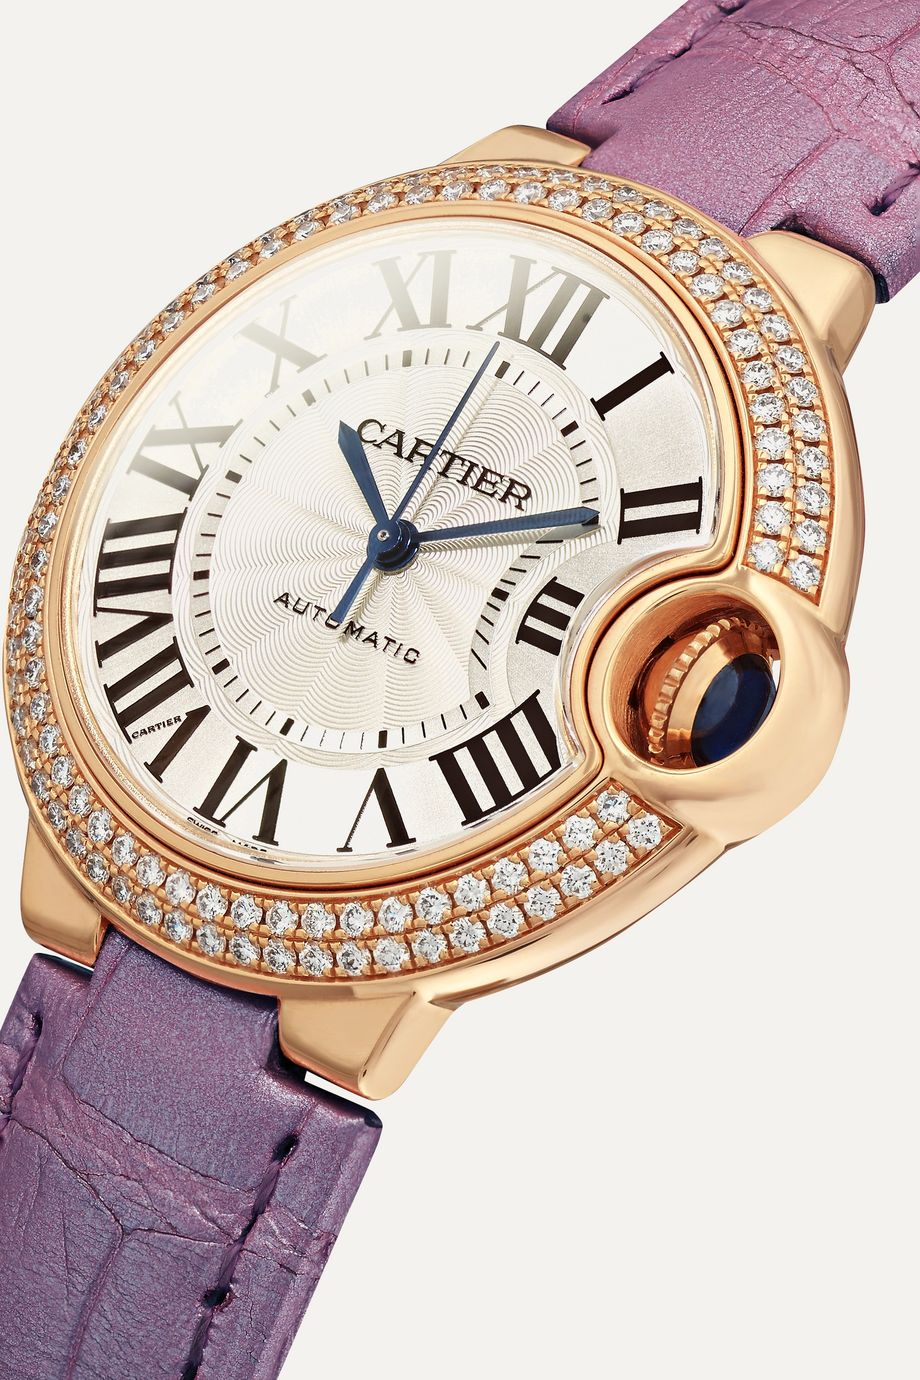 Cartier Montre en or rose 18 carats et diamants à bracelet en alligator Ballon Bleu de Cartier Automatique 36 mm